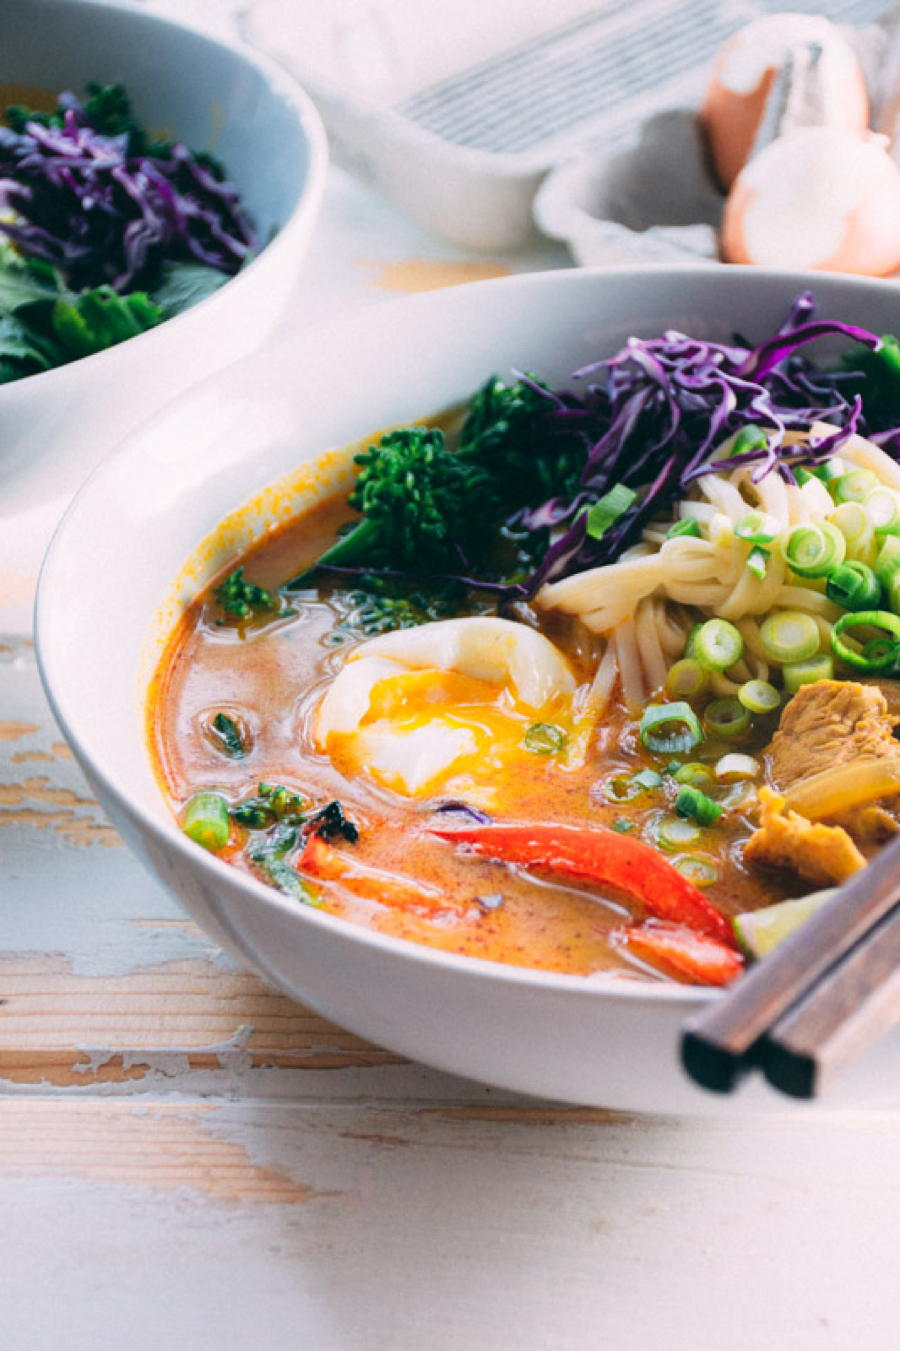 a satisfying and easy curry noodle soup made with chicken, udon noodles, red curry paste, garlic, ginger, turmeric, onions, red peppers, broccolini, soft boiled eggs and finished with cilantro, green onions and shredded red cabbage. | www.nyssaskitchen.com